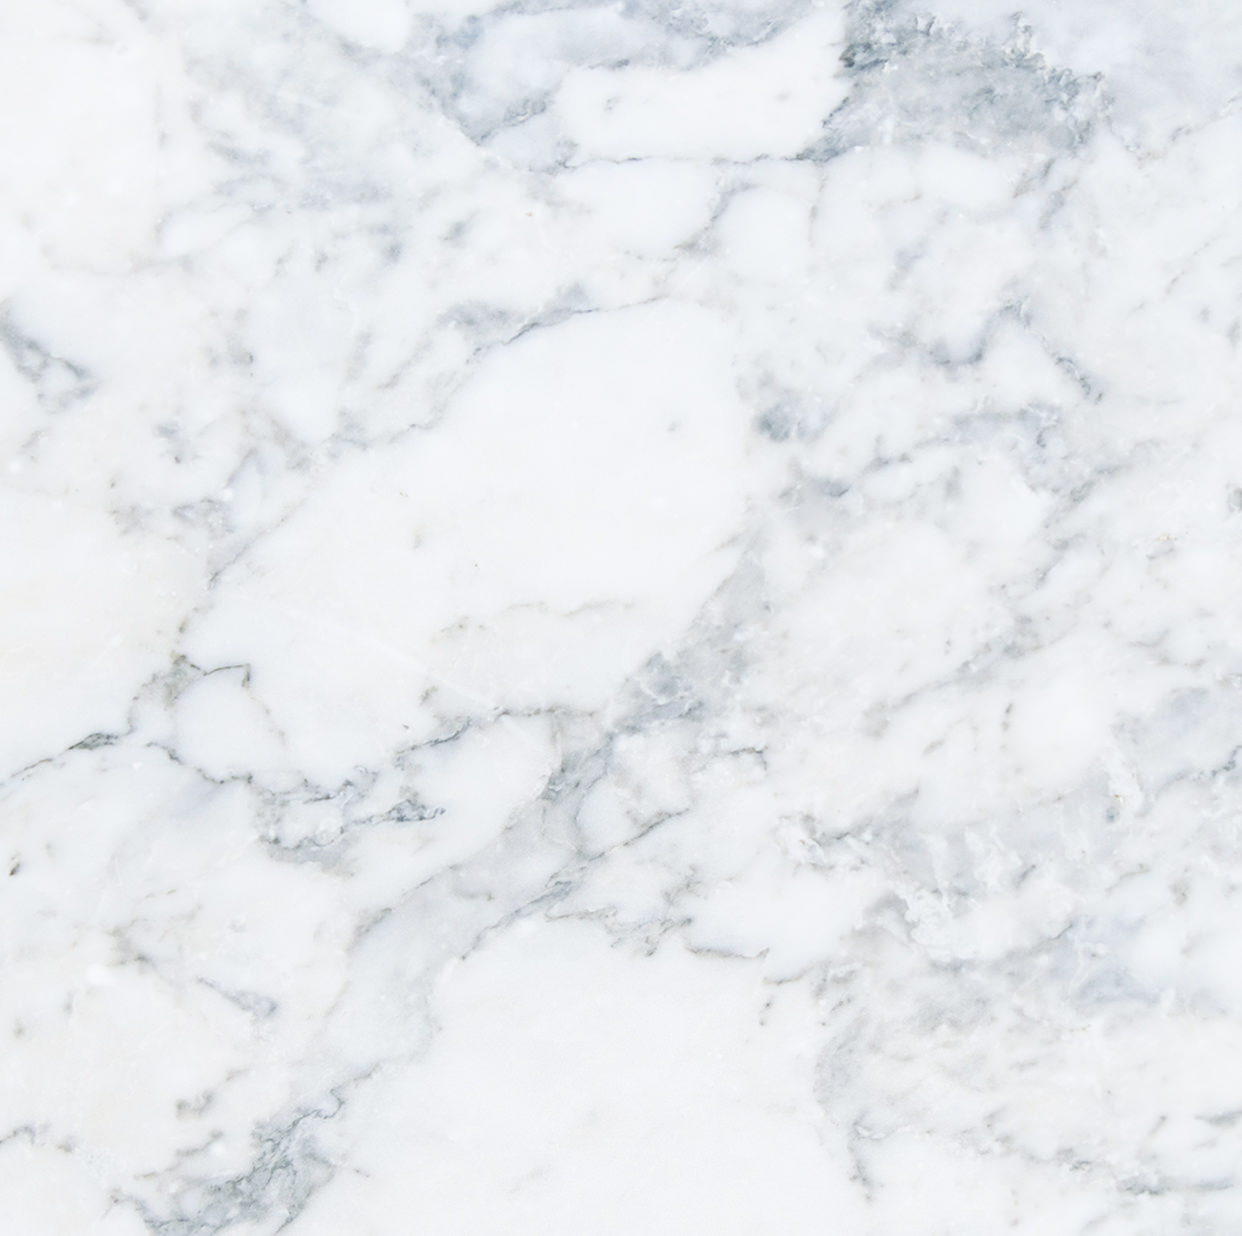 White Marble Tumblr : Marble wallpapers backgrounds images pictures